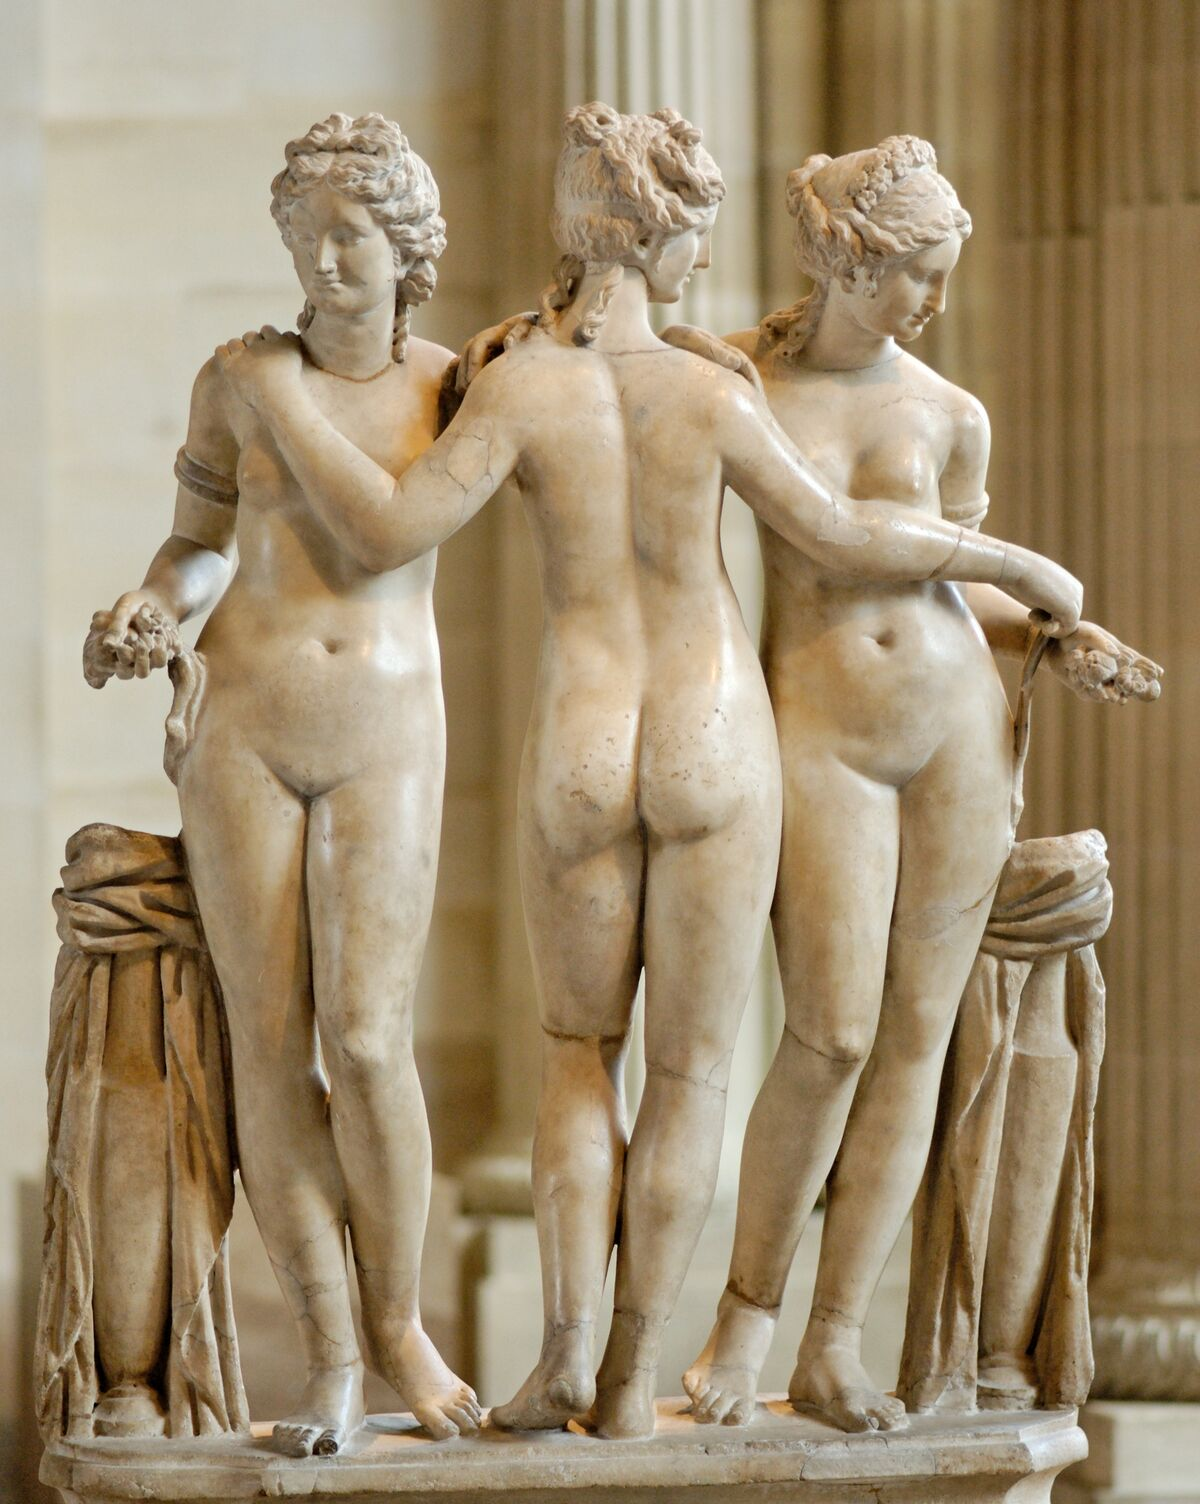 The Three Graces, Roman copy of the Imperial Era (2nd century C.E.?) after a Hellenistic original. Image via Wikimedia Commons.